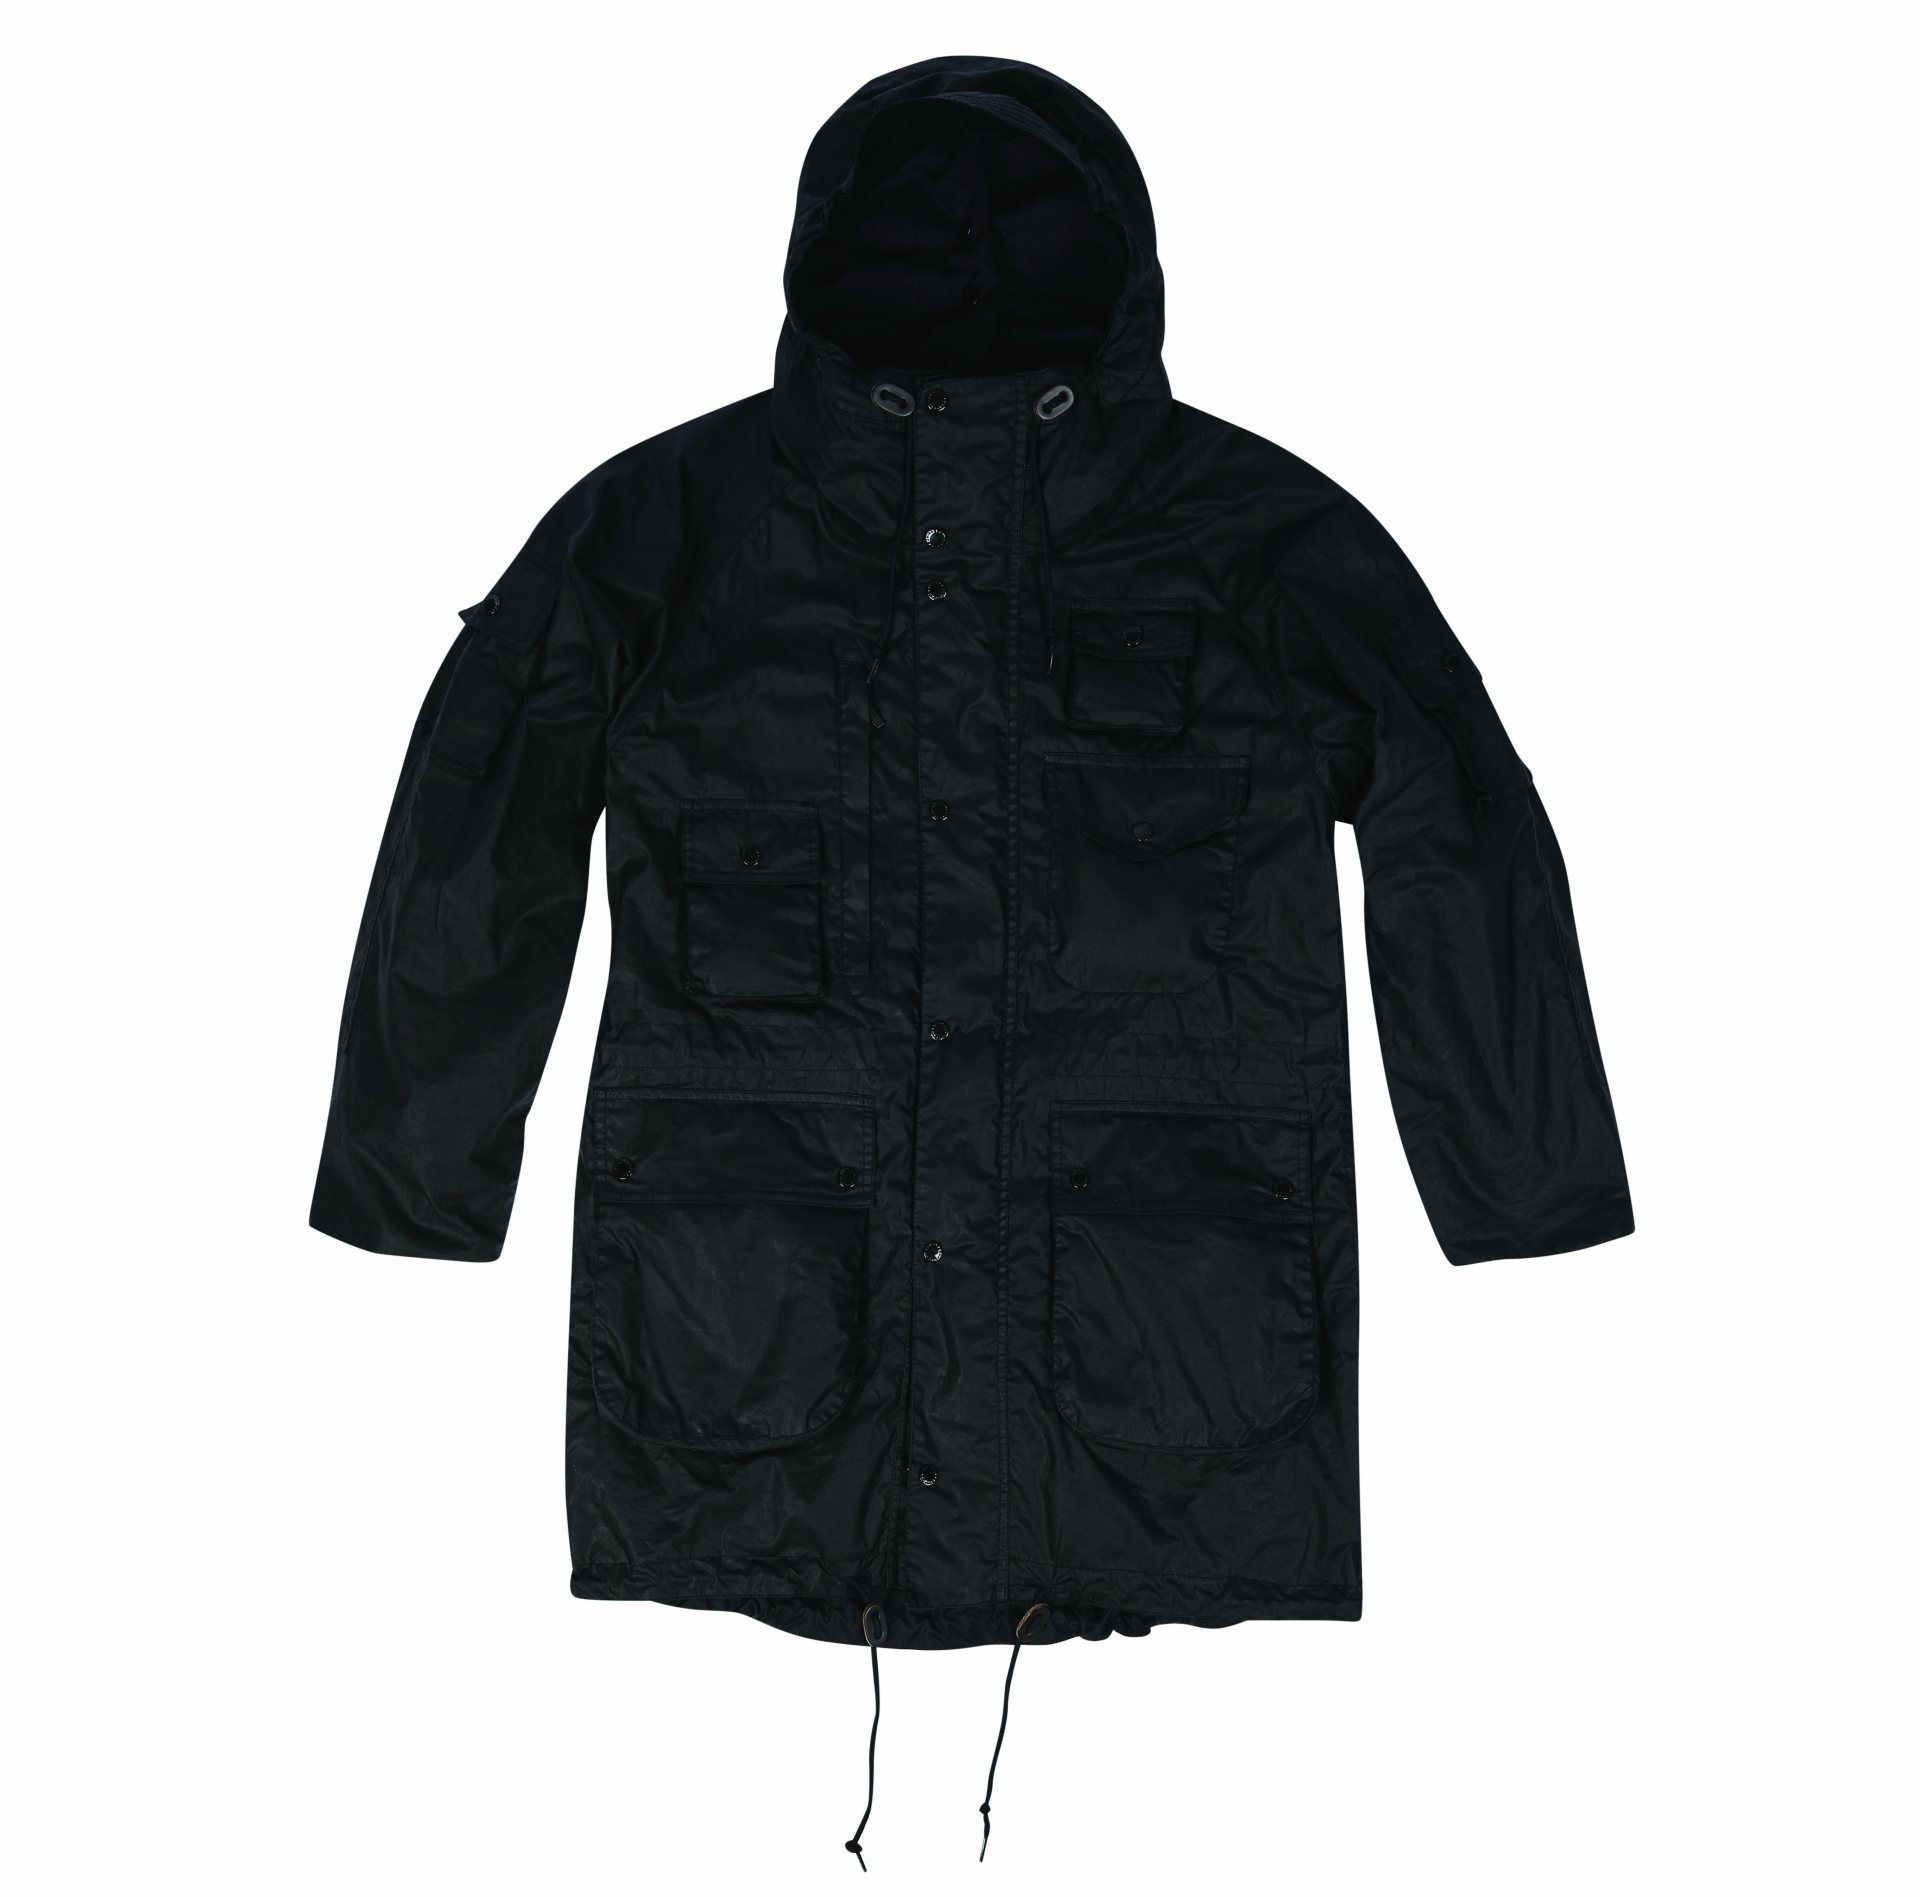 BARBOUR X ENGINEERED GARMENTS -PARKA - MWX1439 - £599